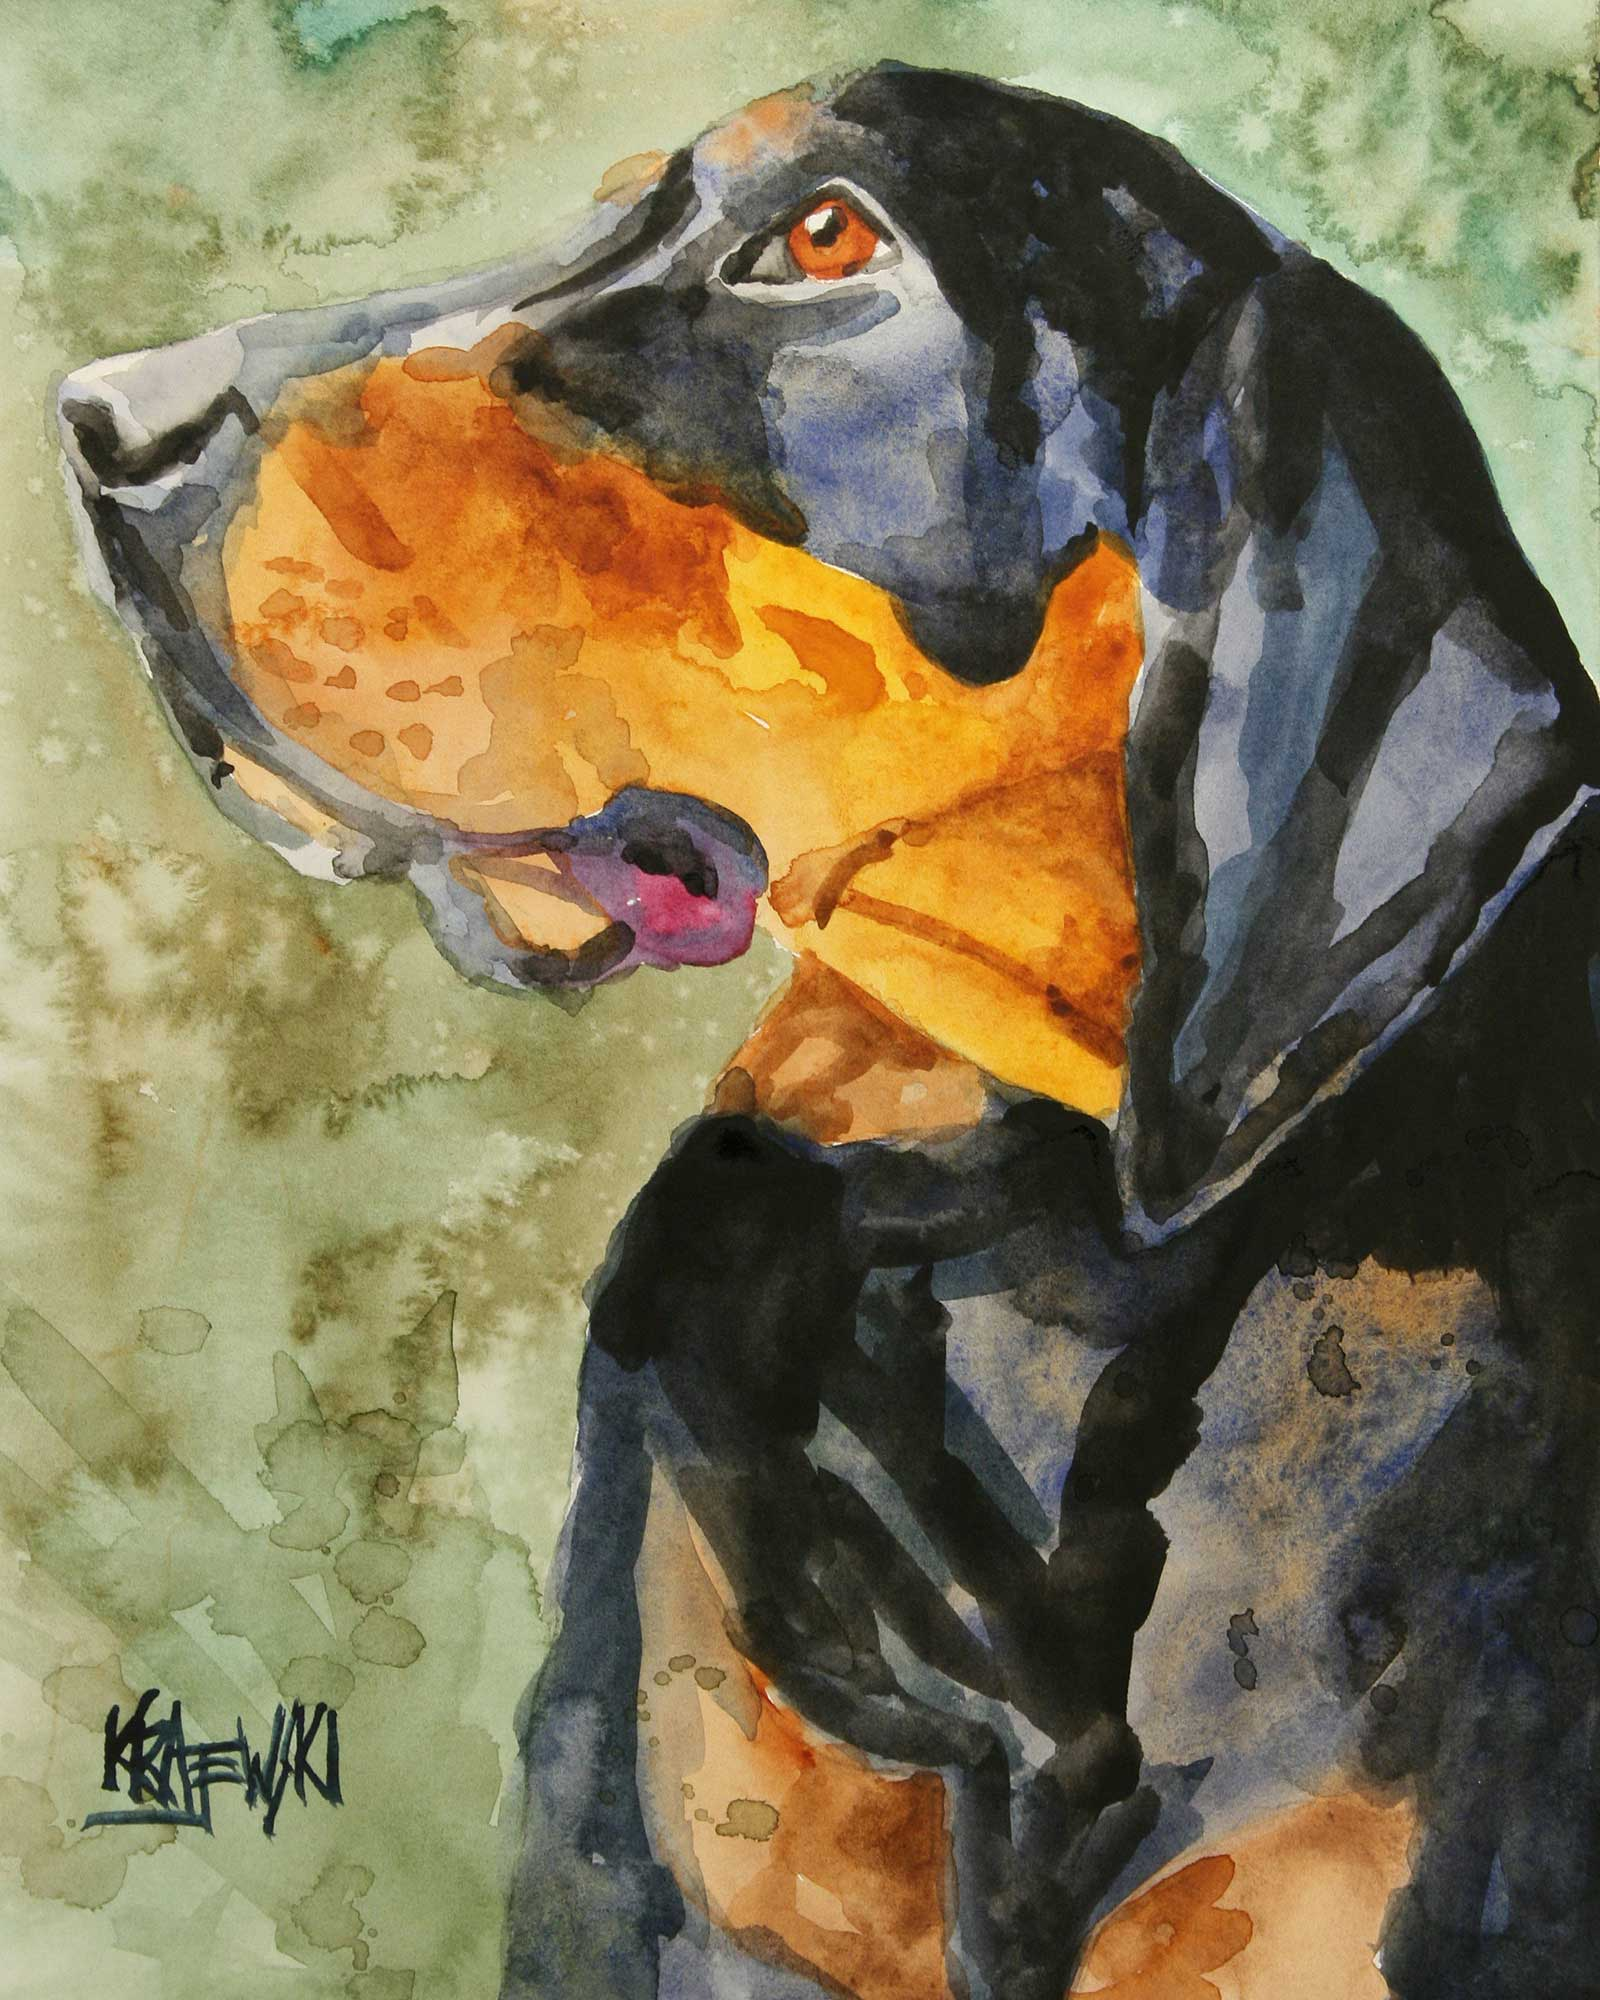 Black and Tan Coonhound Art Print - Ron Krajewski Art